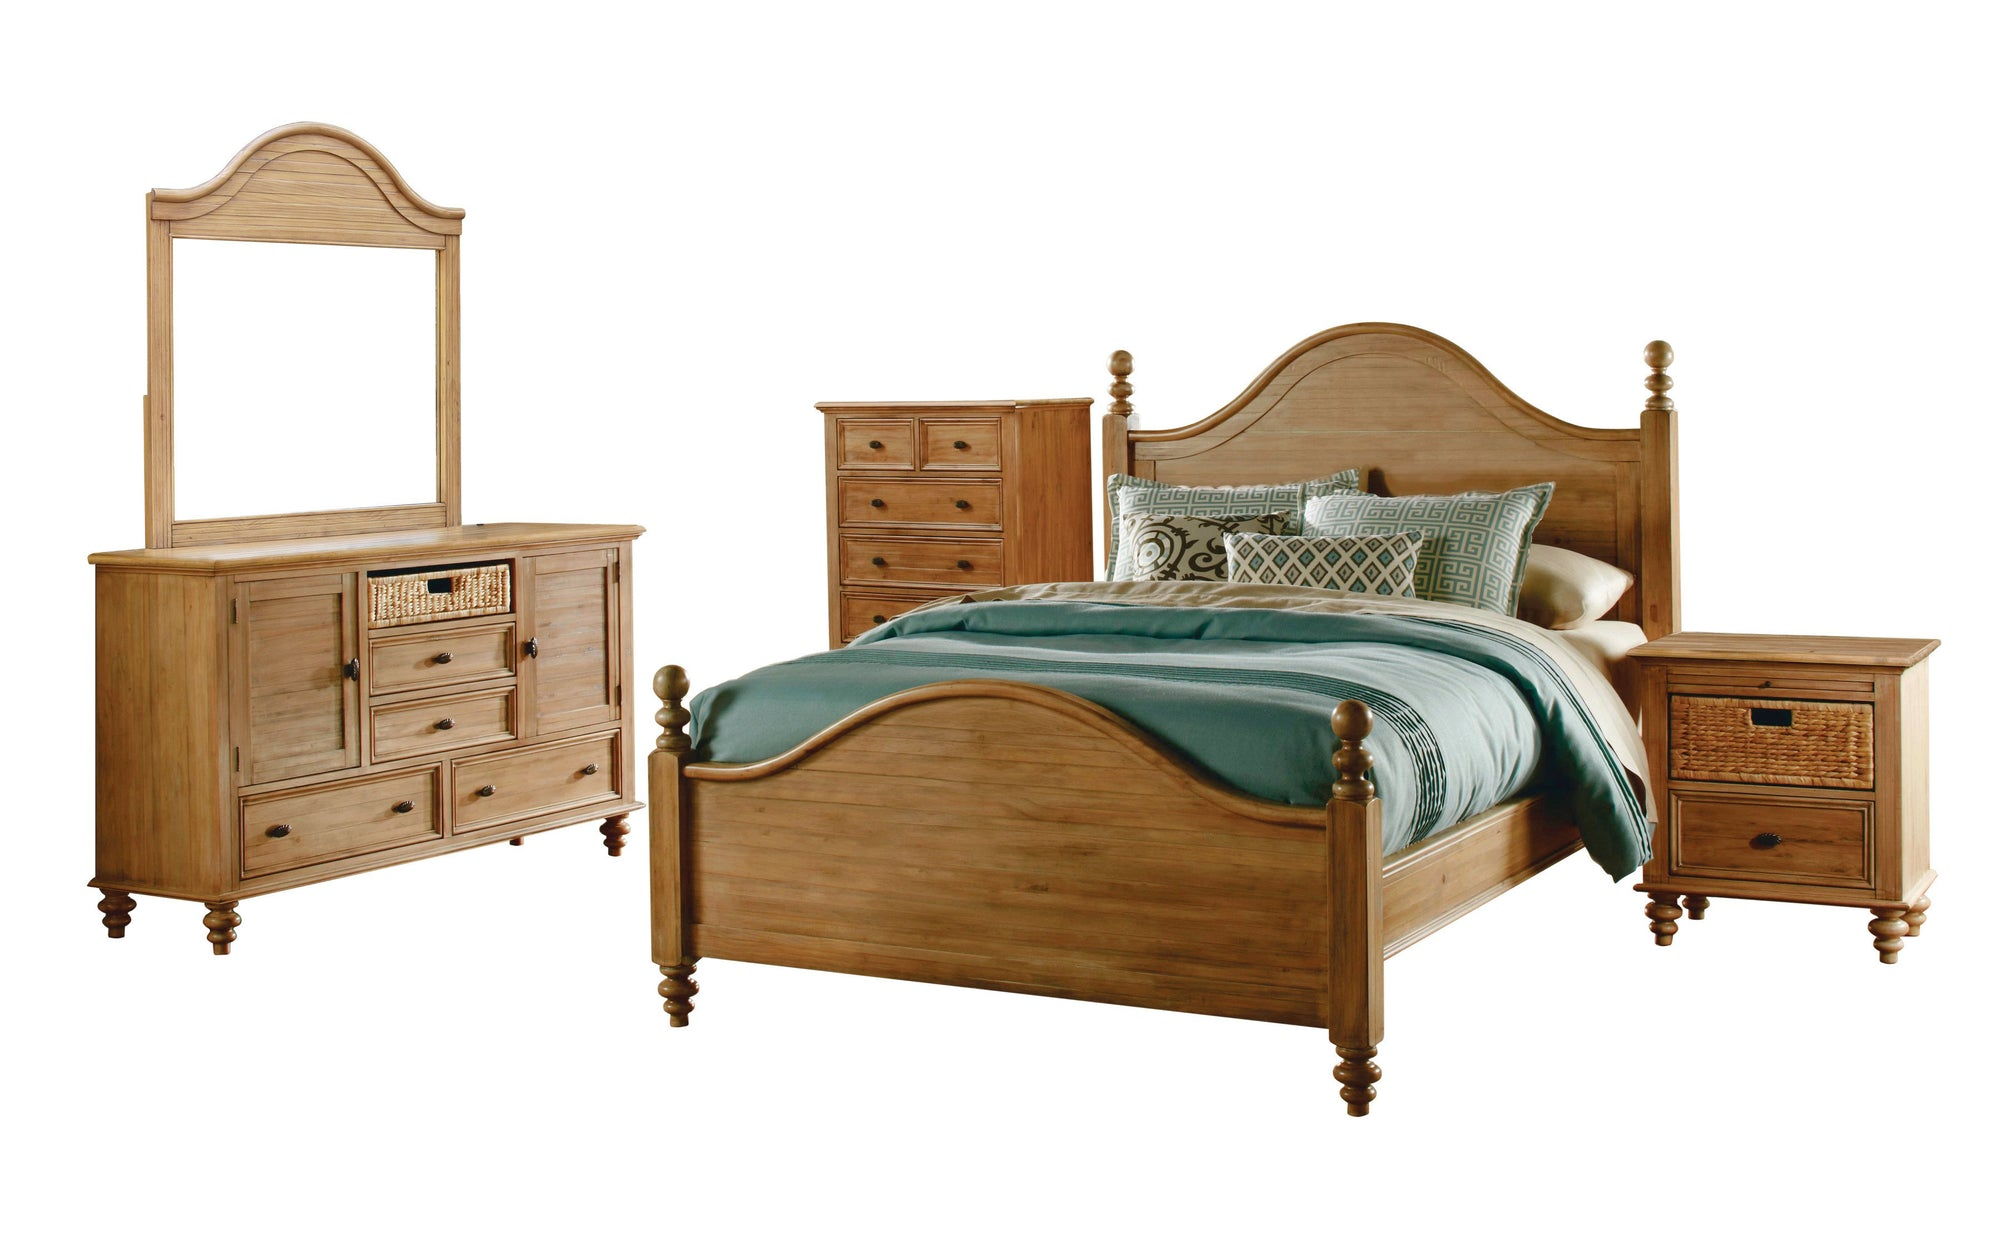 Sunset Trading Vintage Casual 5 Piece King Bedroom Set by Sunset Trading - HomeKingz.com - Online furniture shop with the best prices & premium customer support!